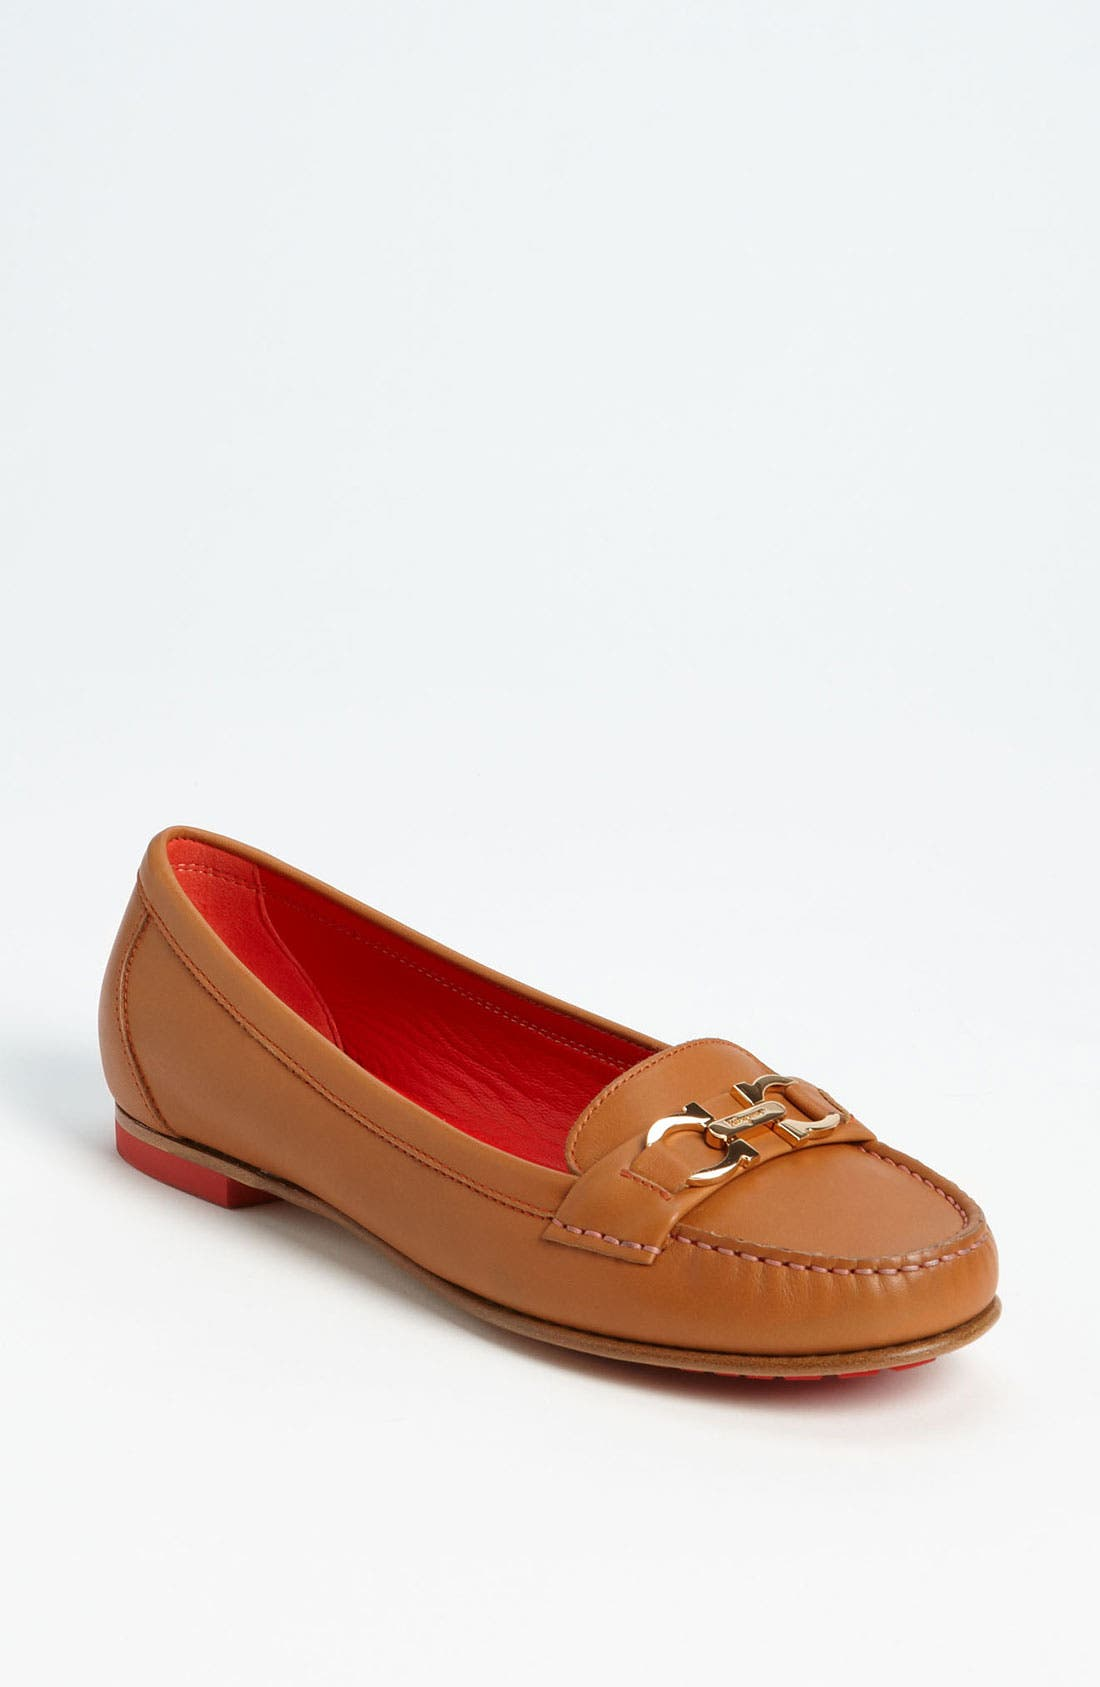 Alternate Image 1 Selected - Salvatore Ferragamo 'Simba' Loafer